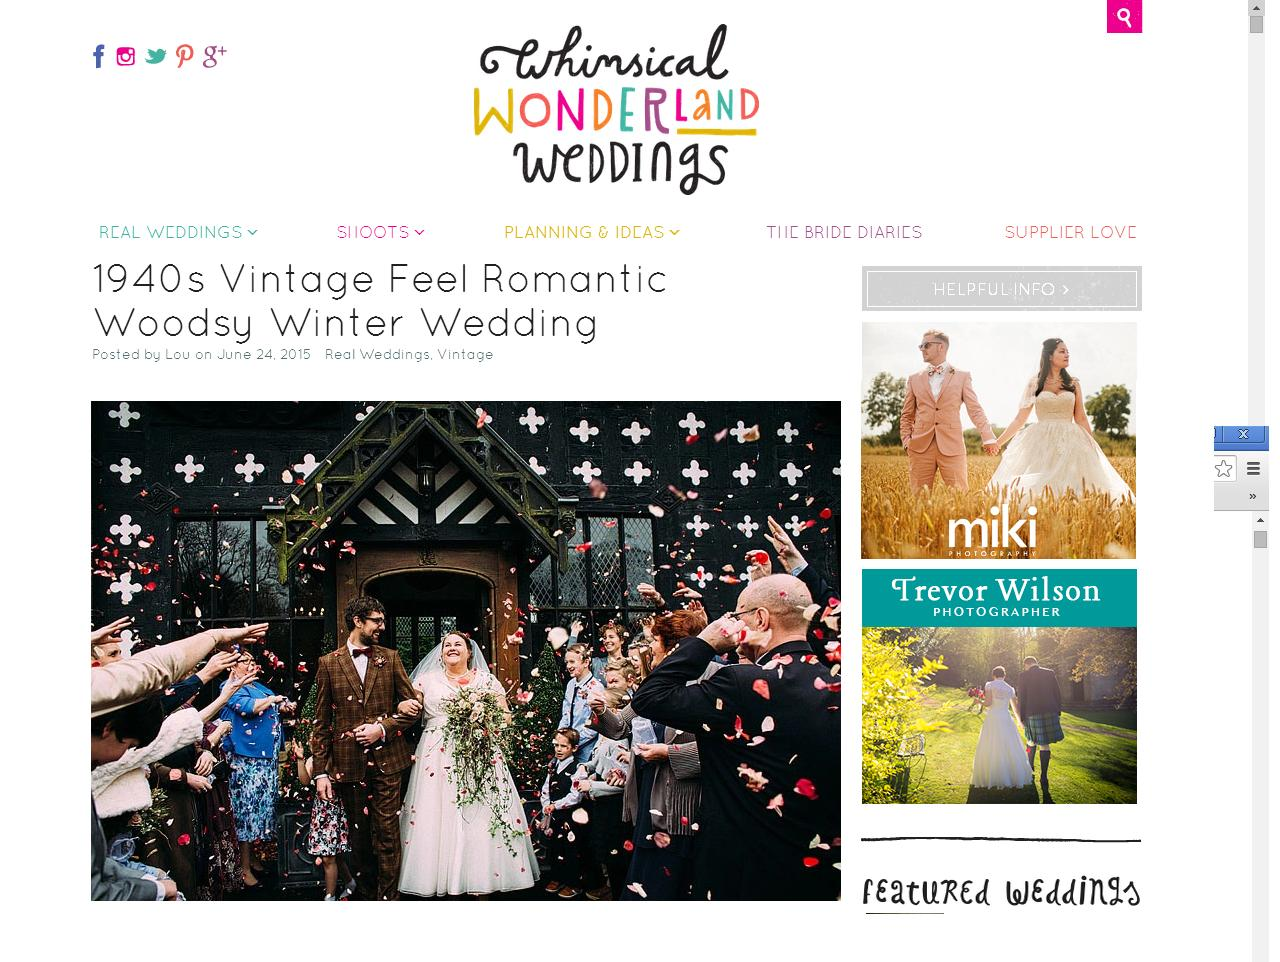 Whimsical Wonderful Weddings